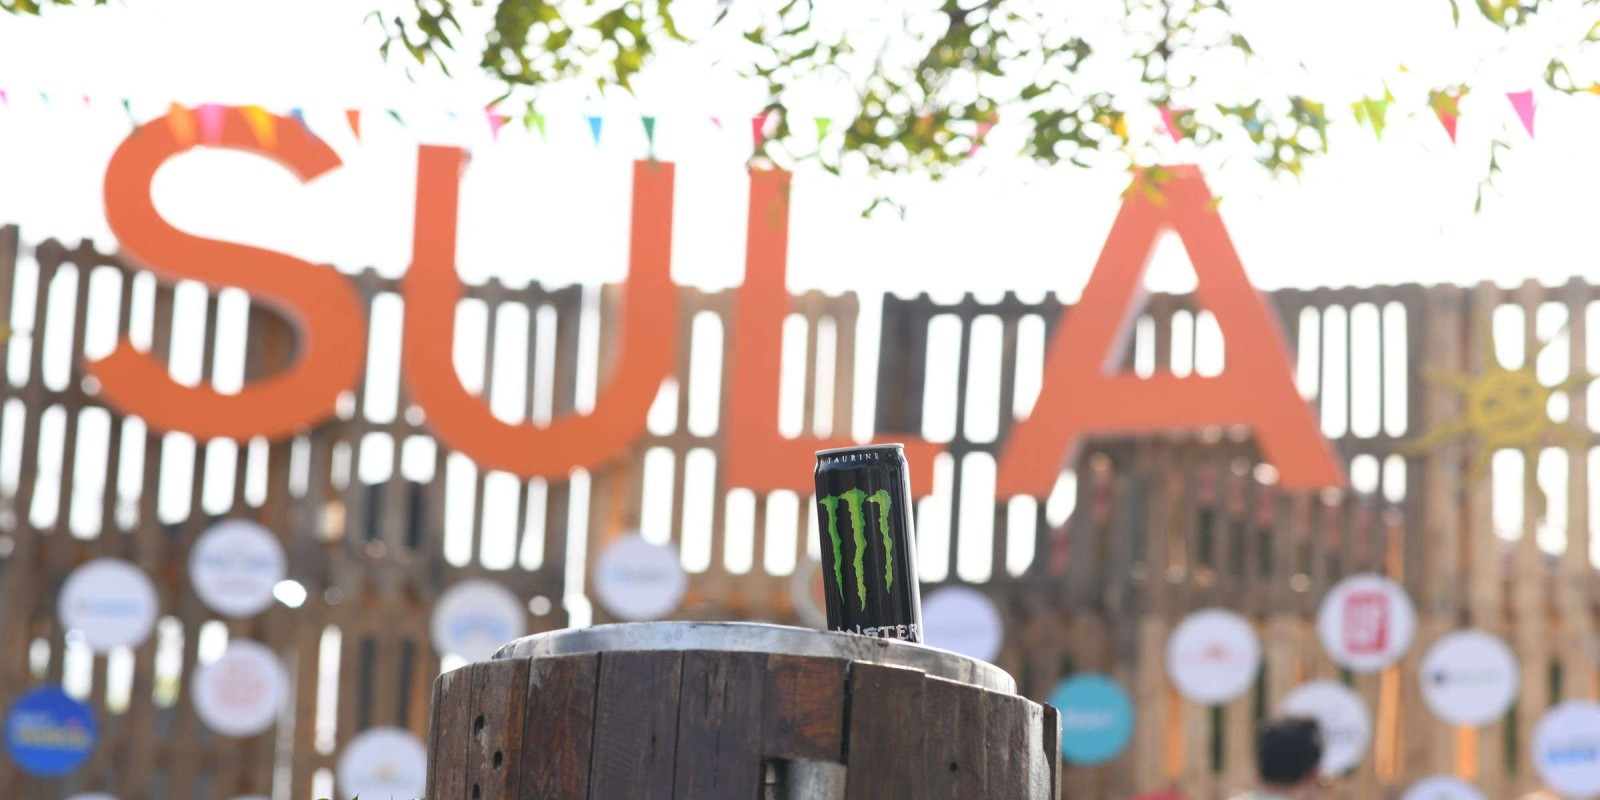 Images from the Sula Fest which Monster Energy was a part of